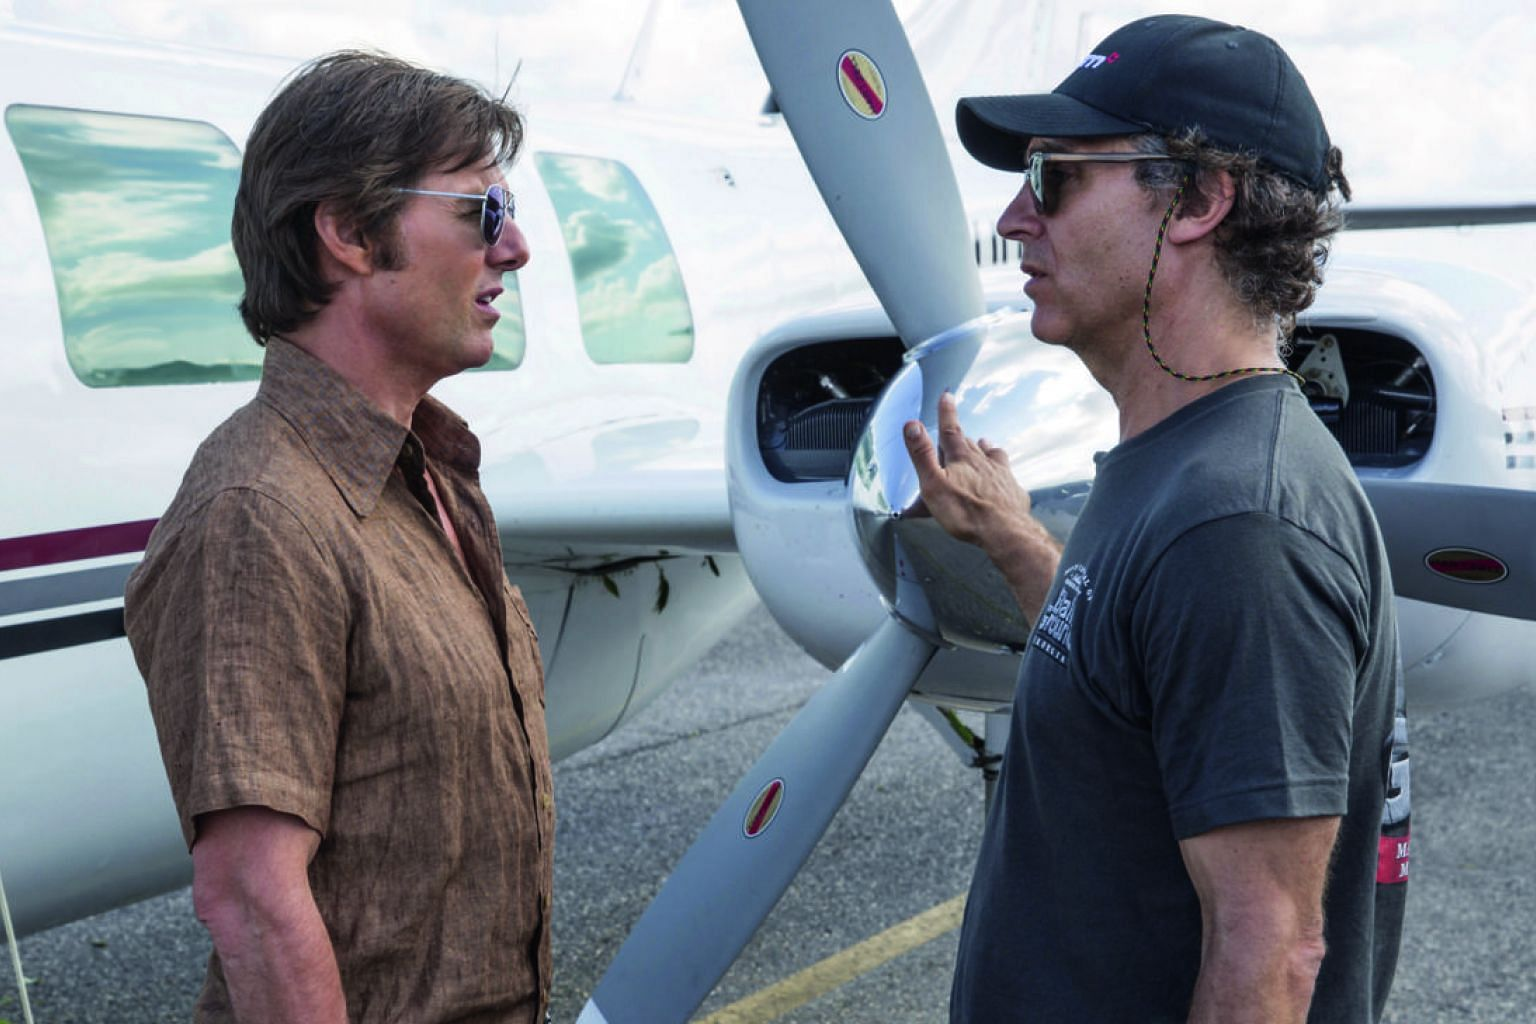 Director Doug Liman with Tom Cruise (far left) on the set of American Made.